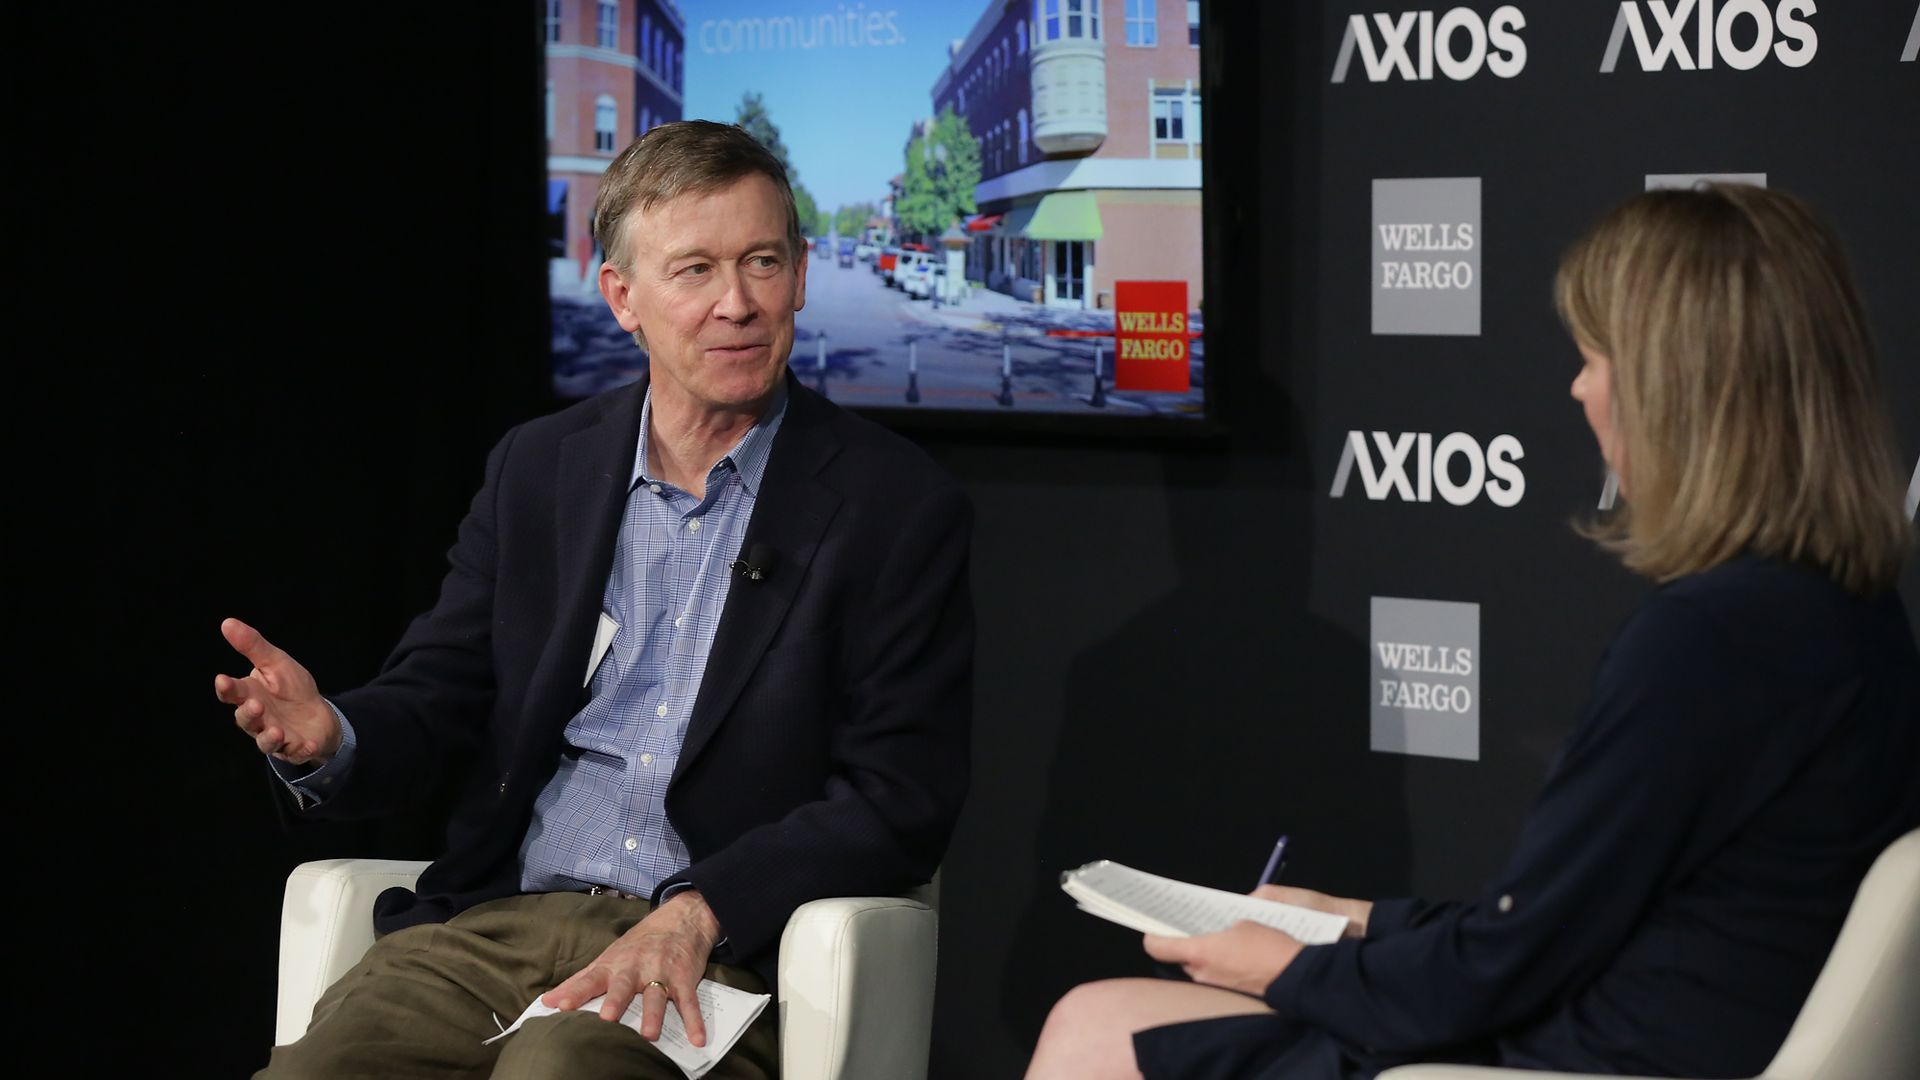 Colorado Governor John Hickenlooper speaks at an Axios event on August 24th